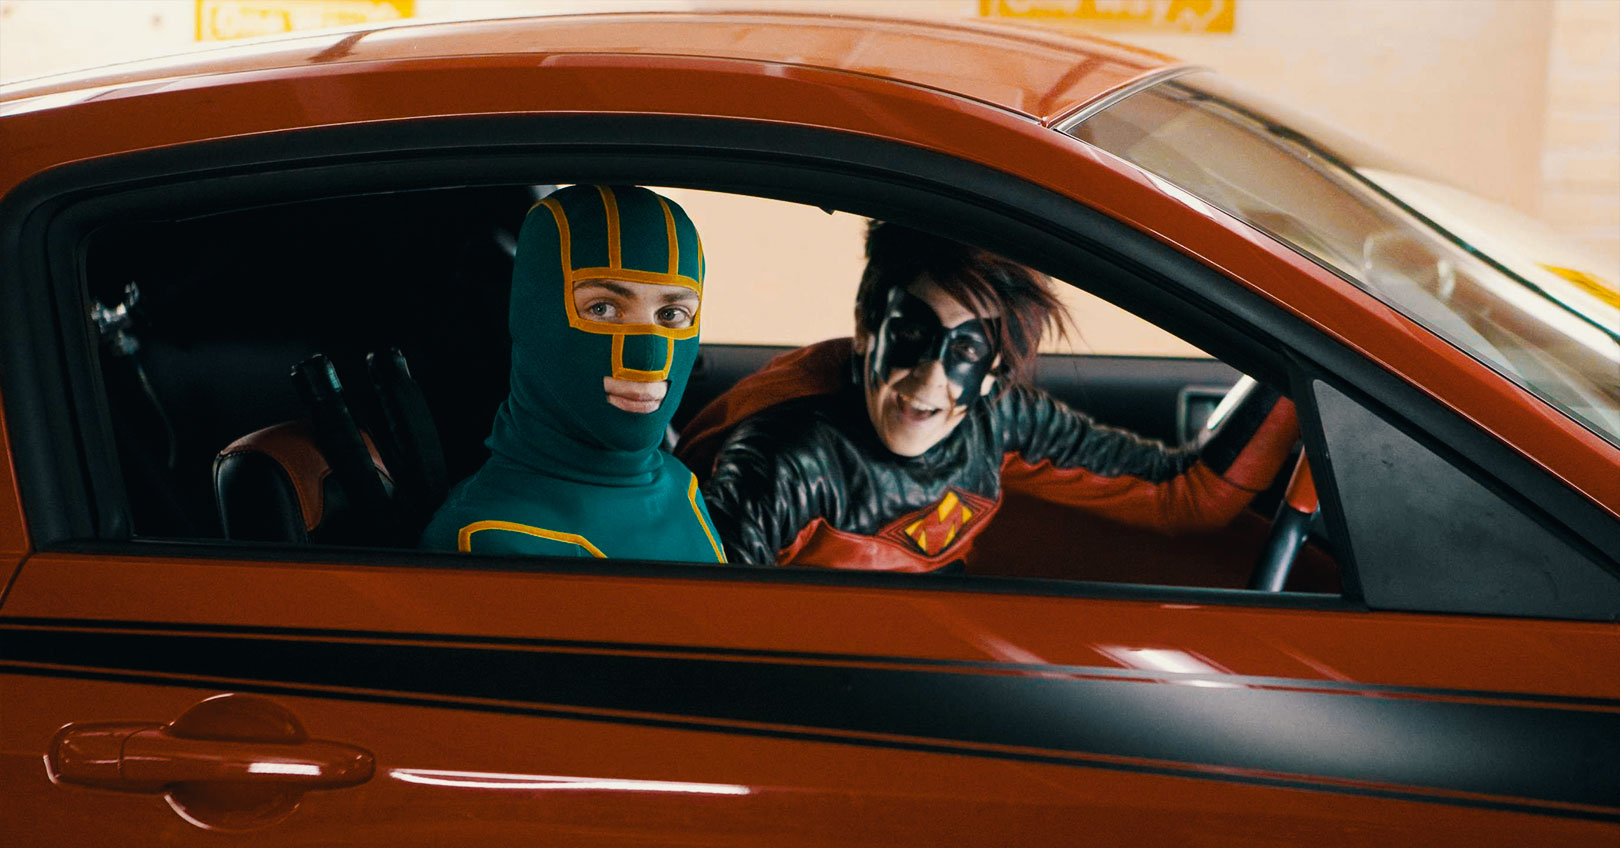 Kick-Ass - Aaron Taylor-Johnson and Christopher Mintz-Plasse